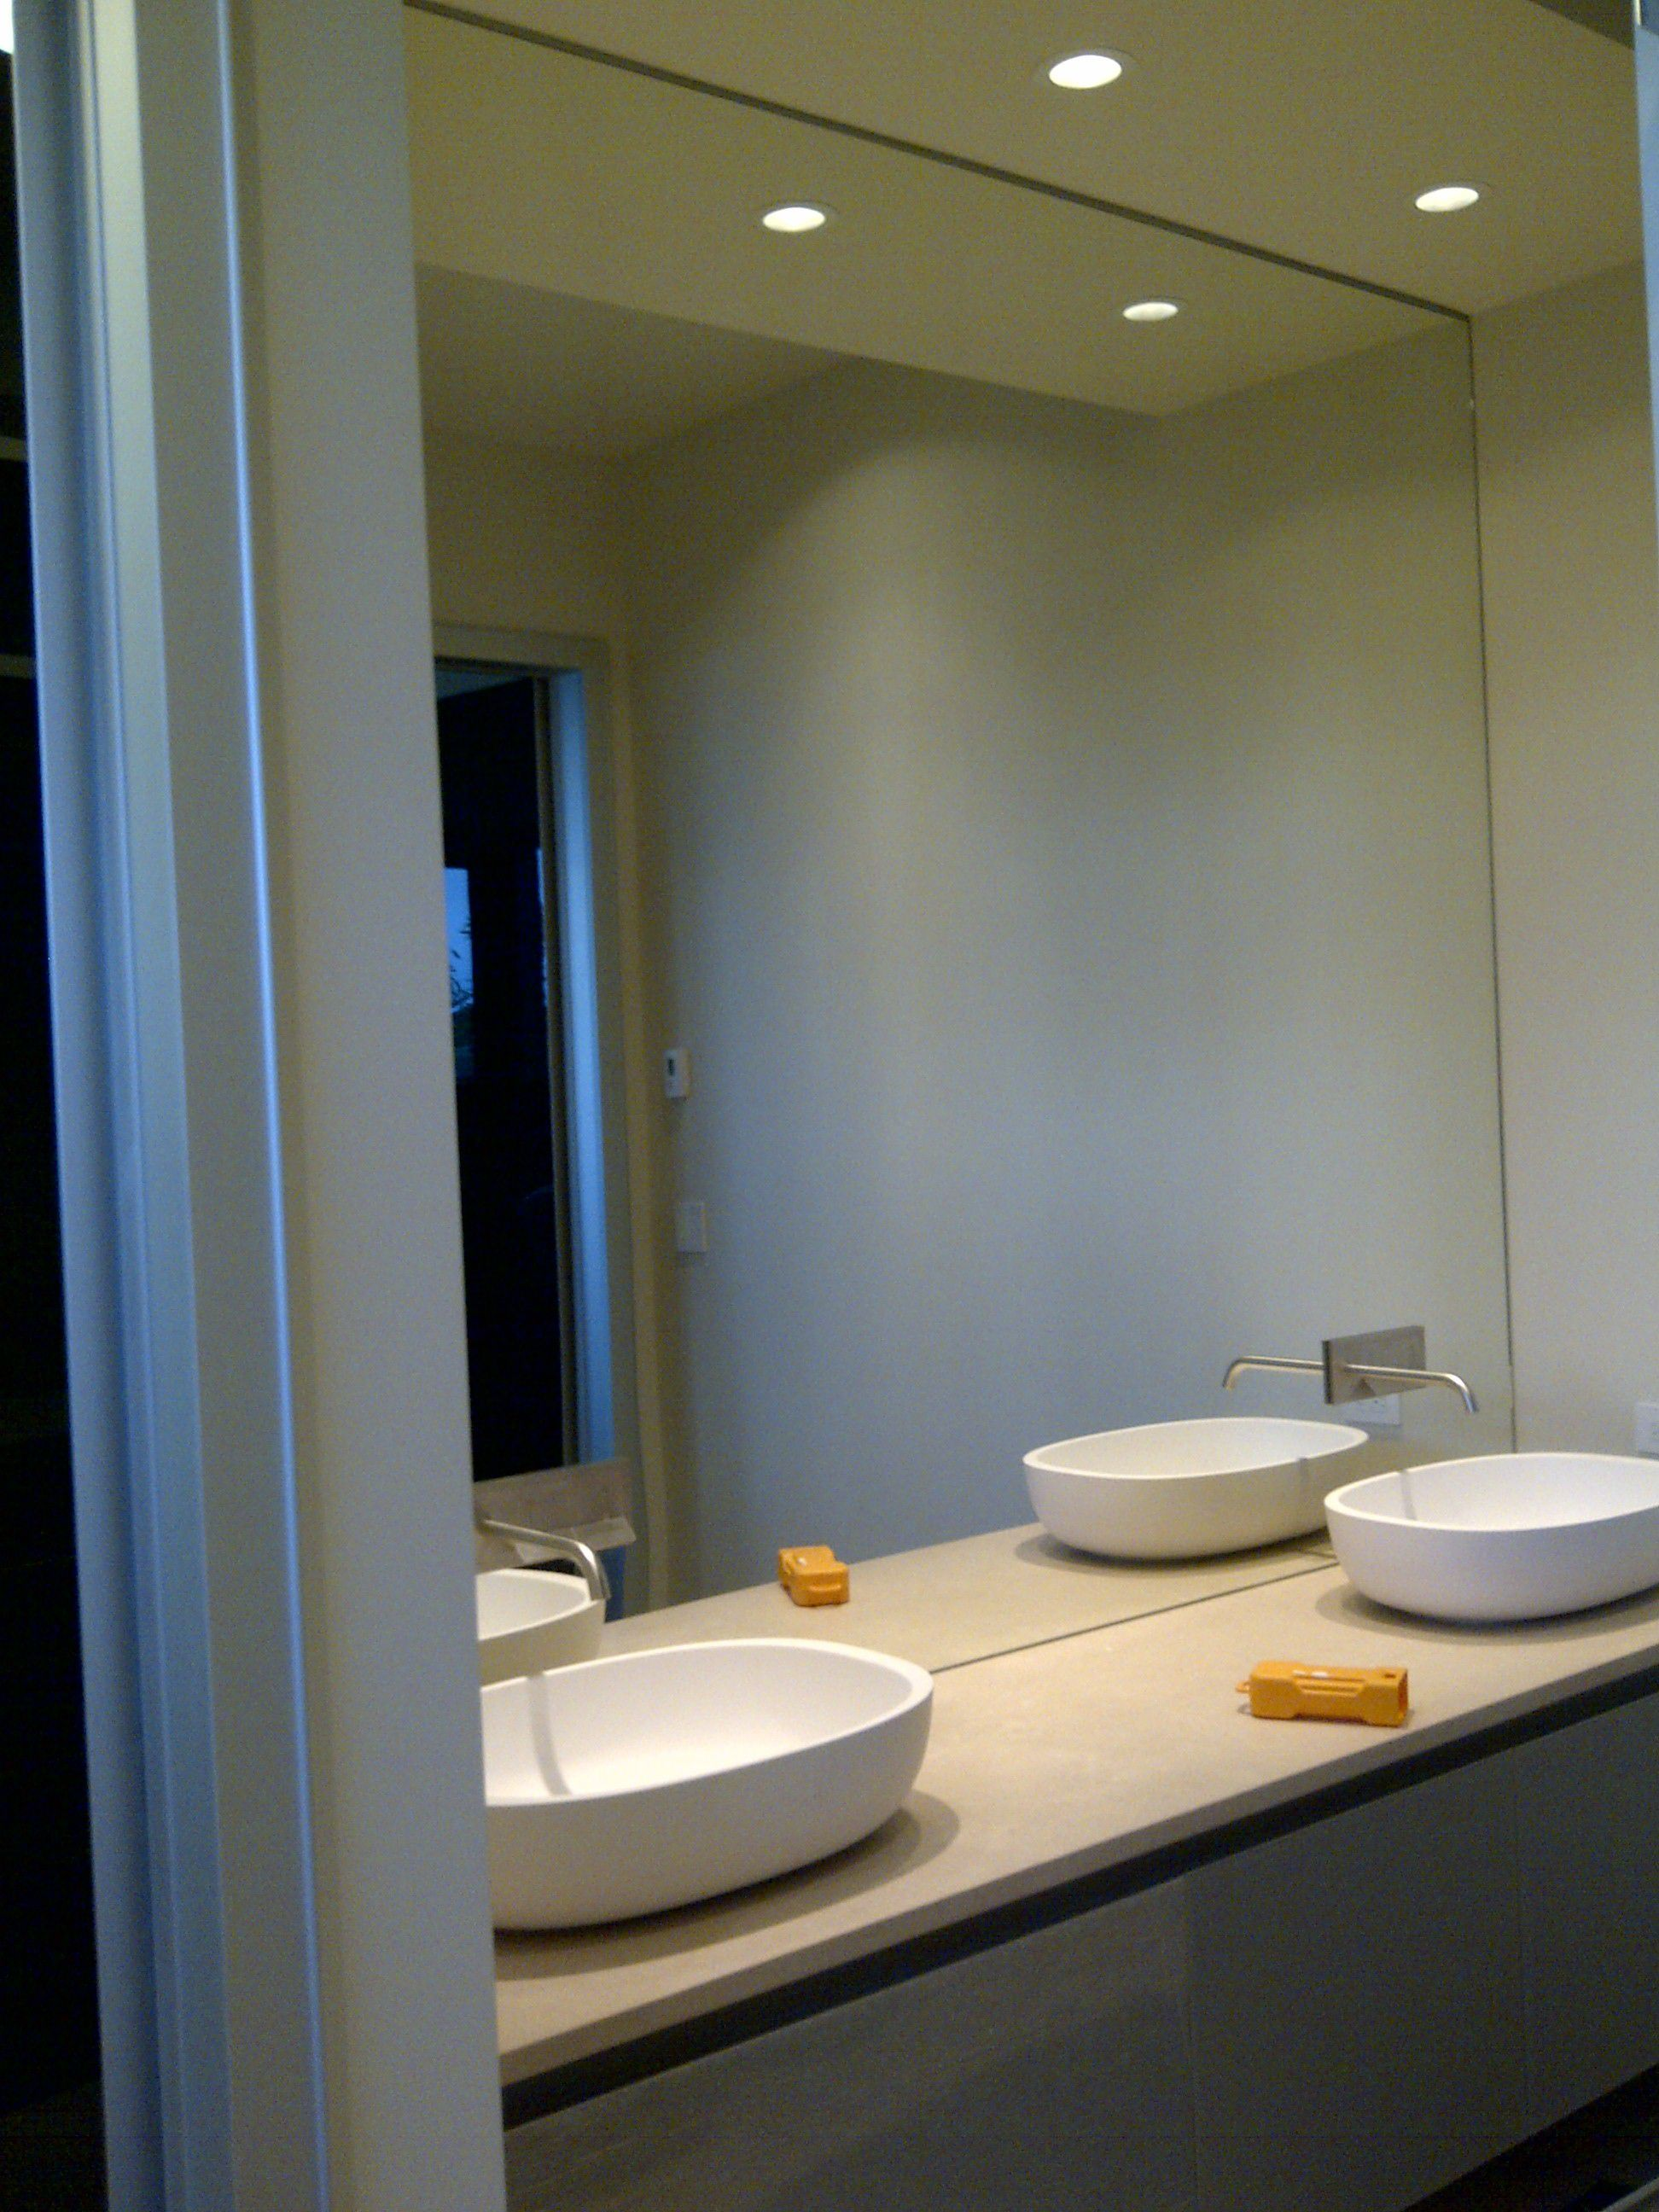 Superb Design Of The Bathroom Areas With White Double Sink Added With Big Mirror Bathroom Ideas